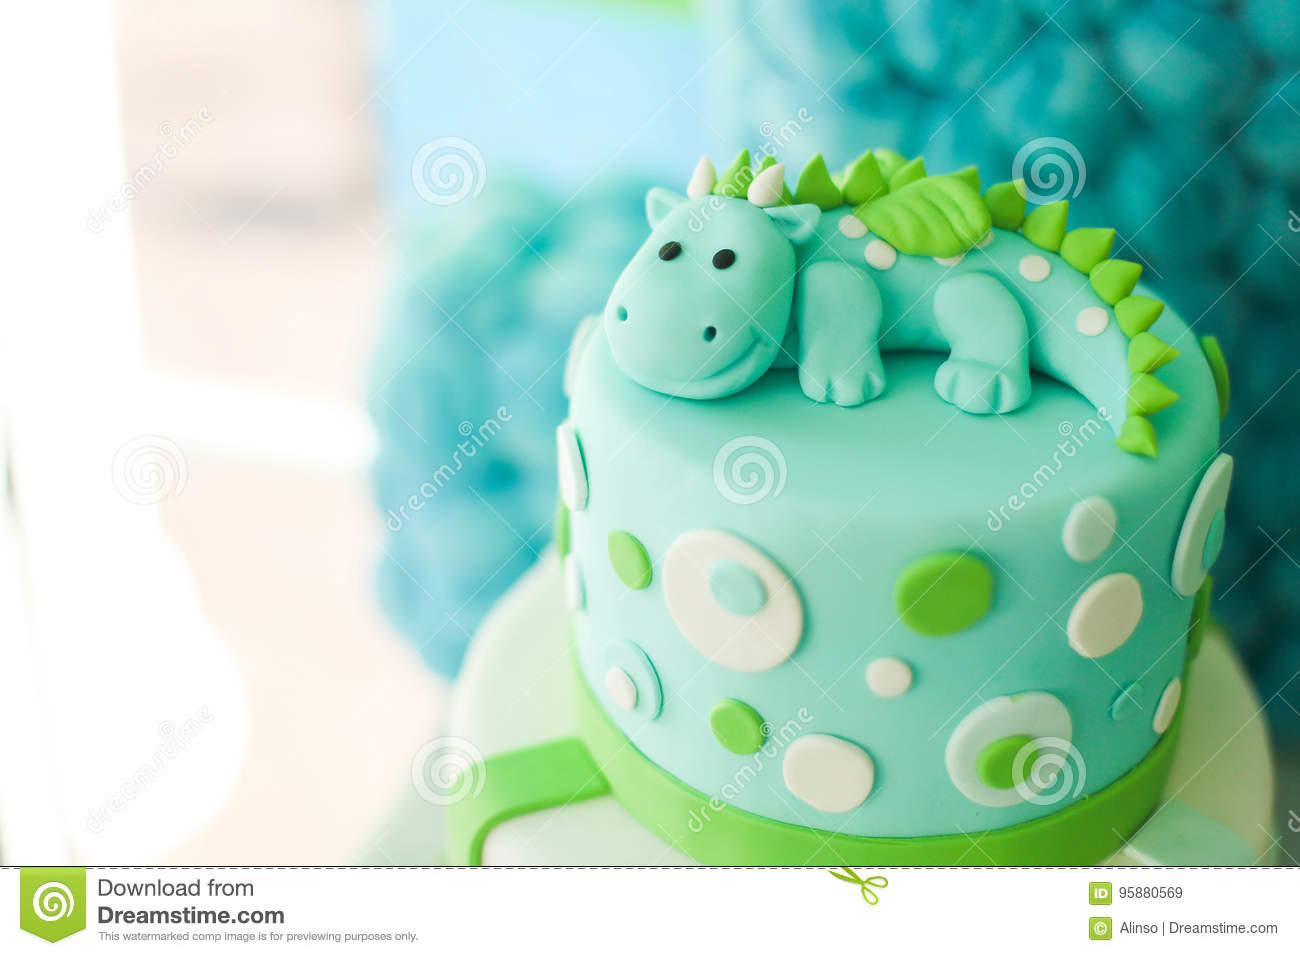 Blue and green birthday cake with cute dragon